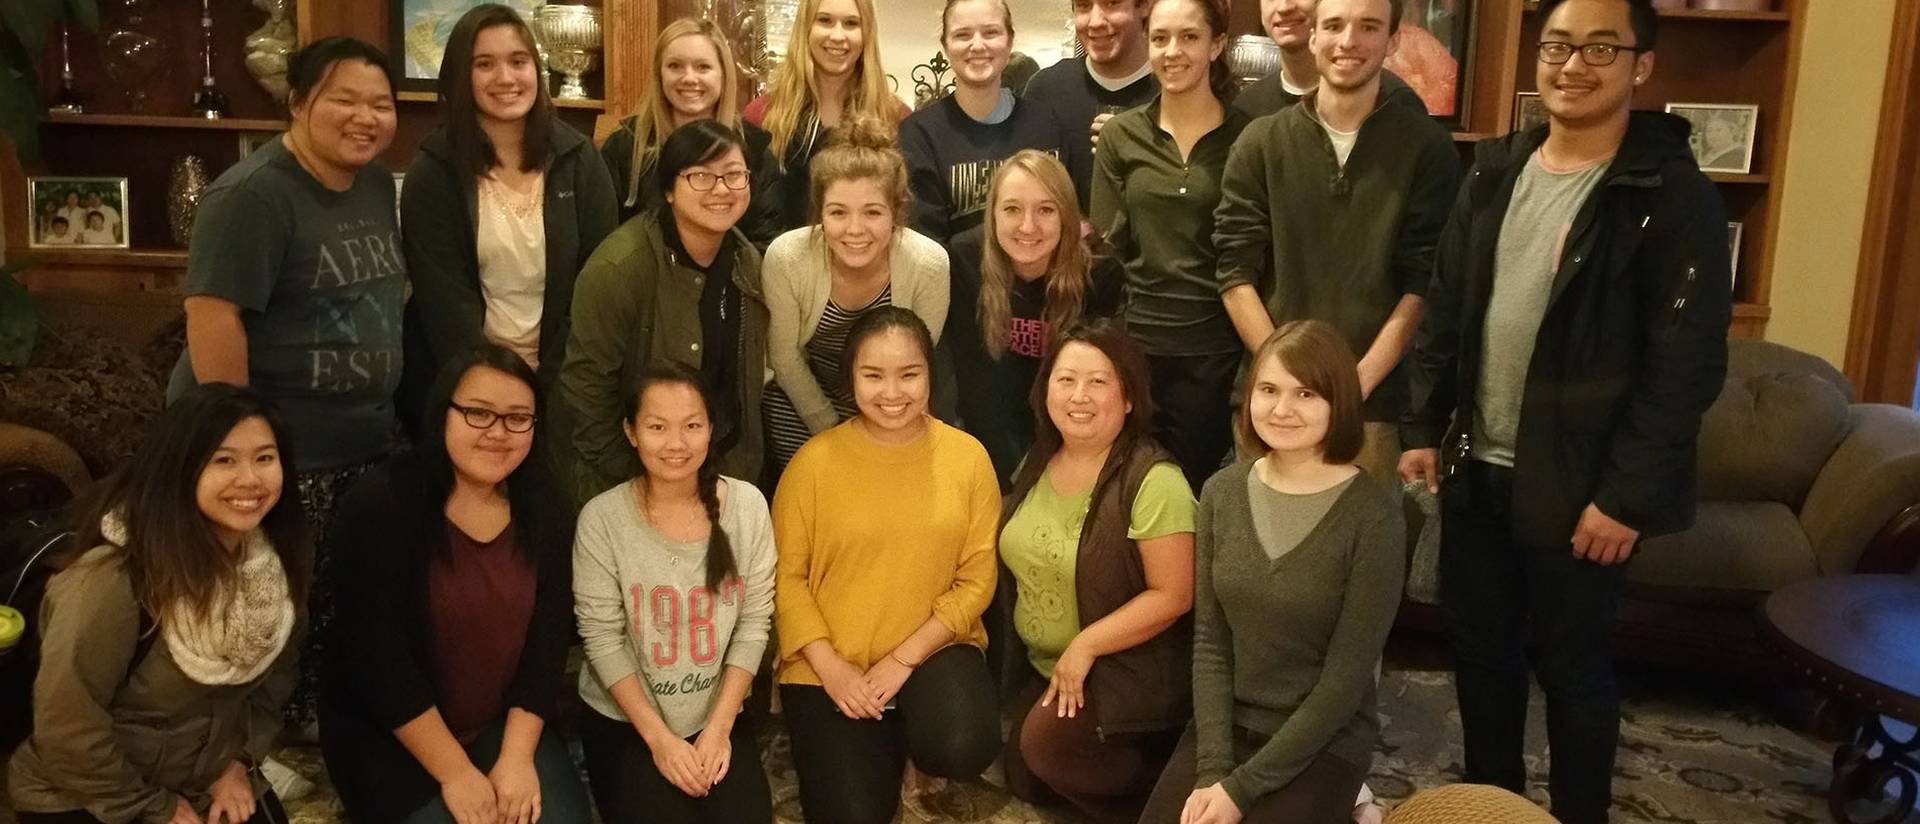 Ka Vang's Hmong Culture class poses for a group picture.